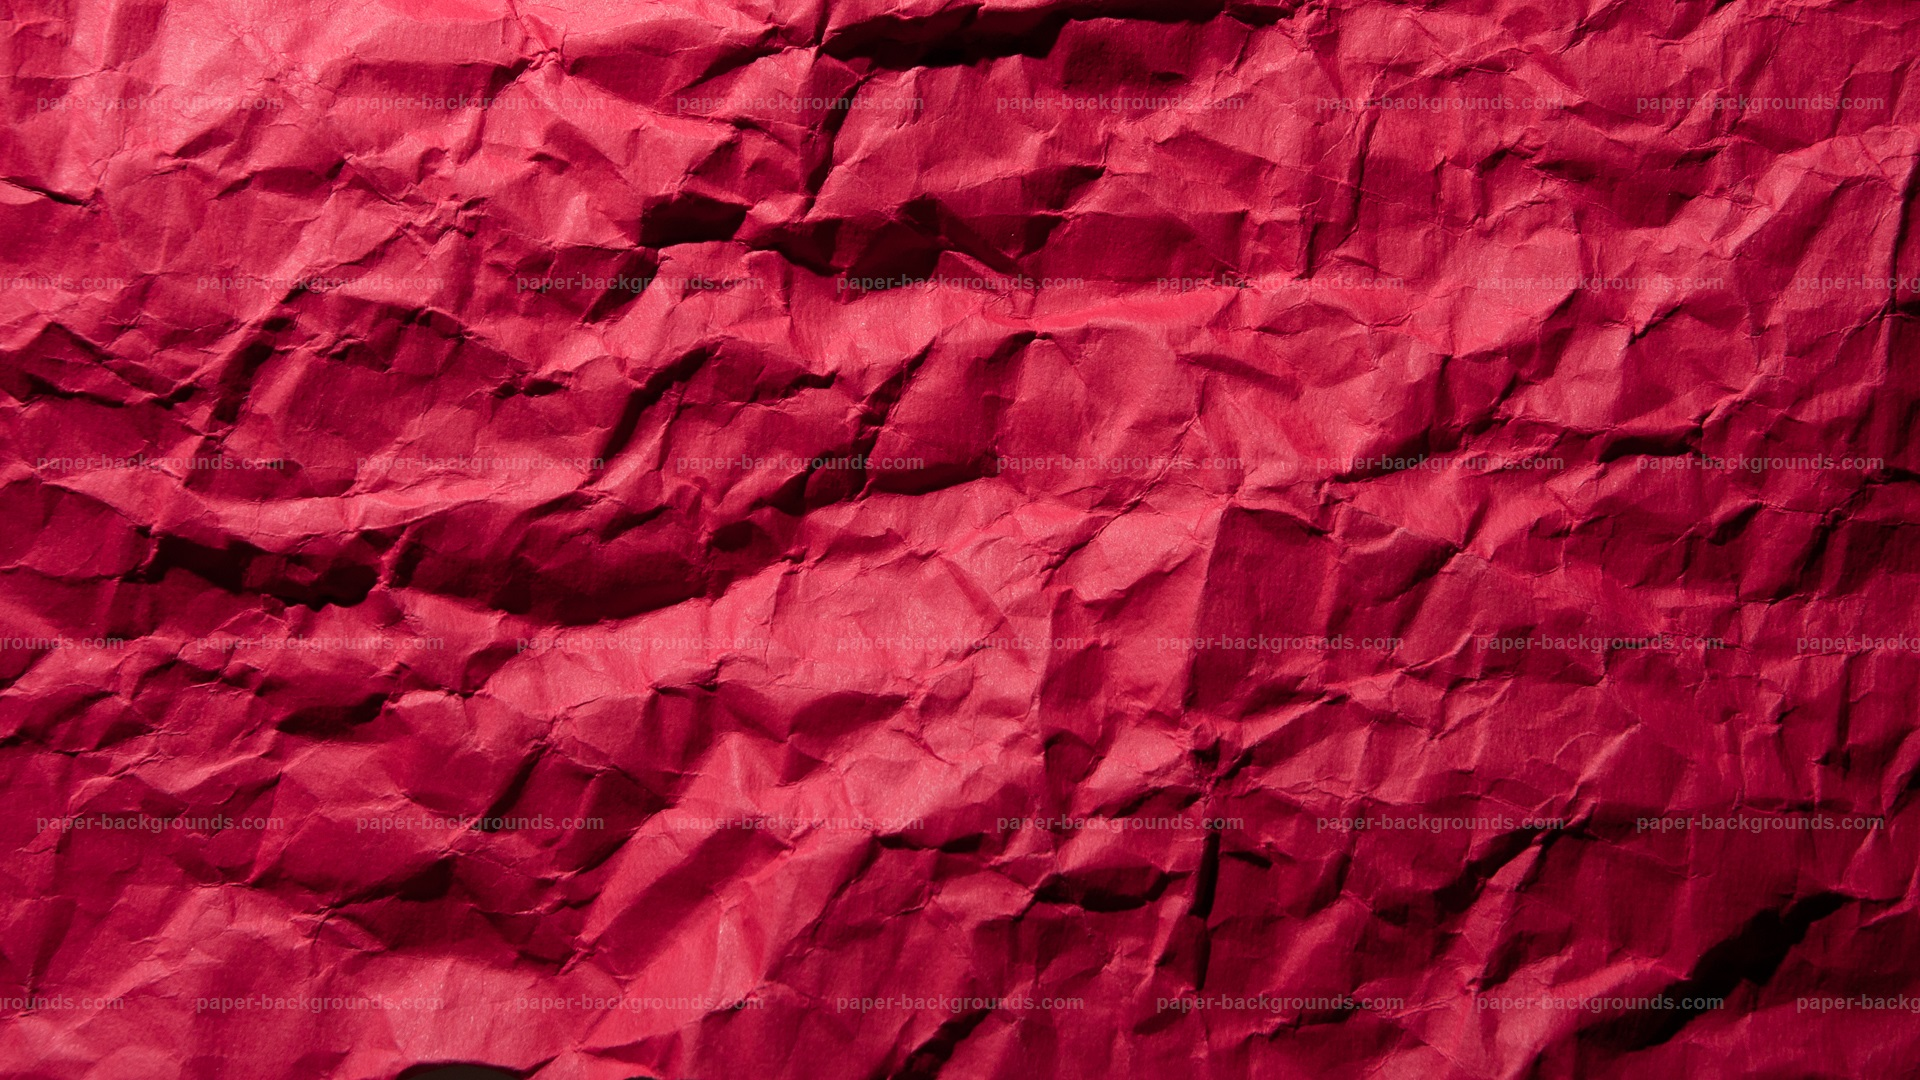 Crimpled Red Paper Texture HD